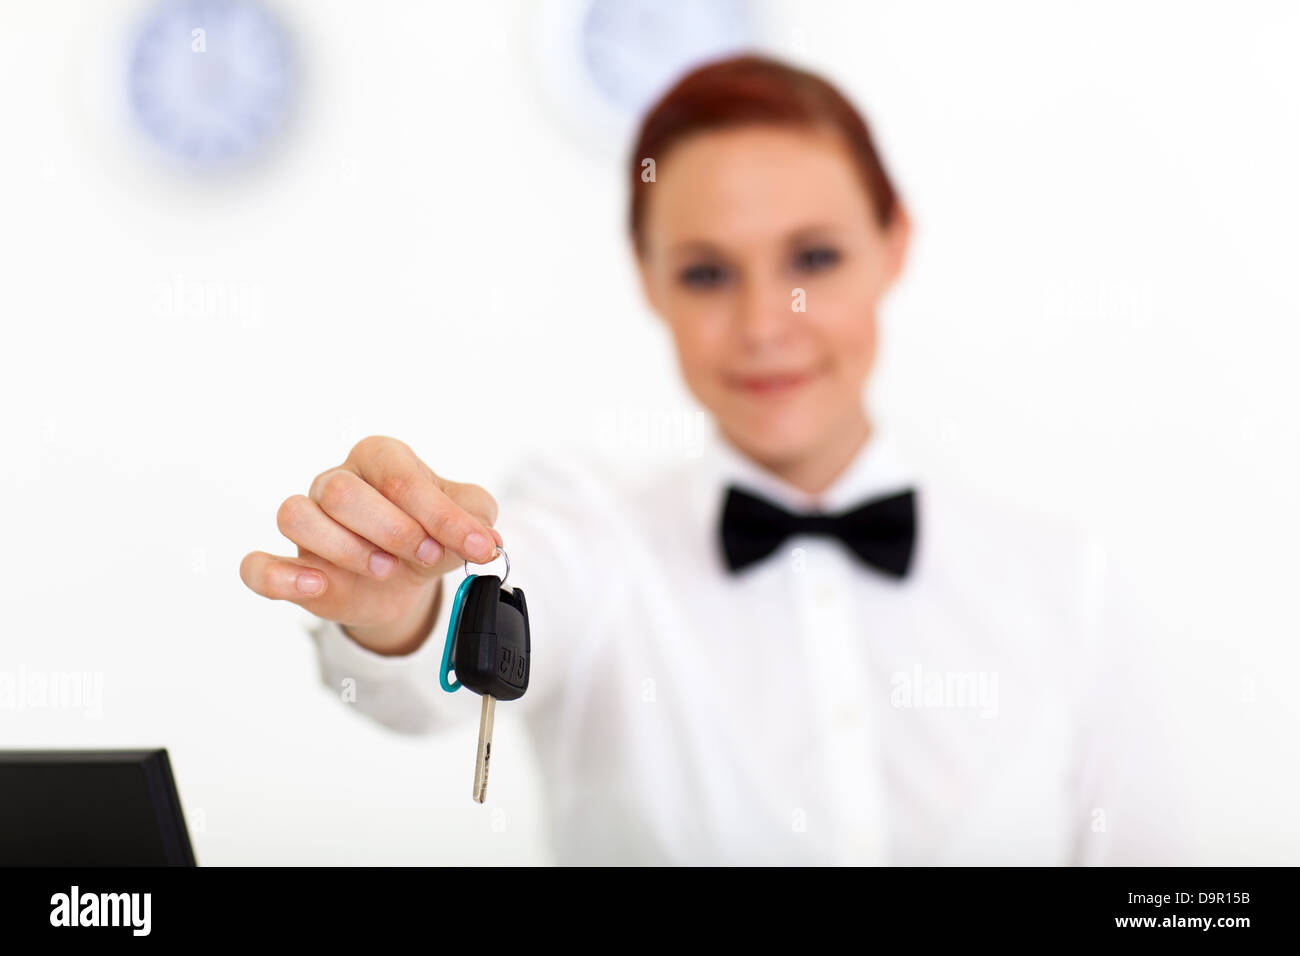 car rental company employee hand over car key to client - Stock Image